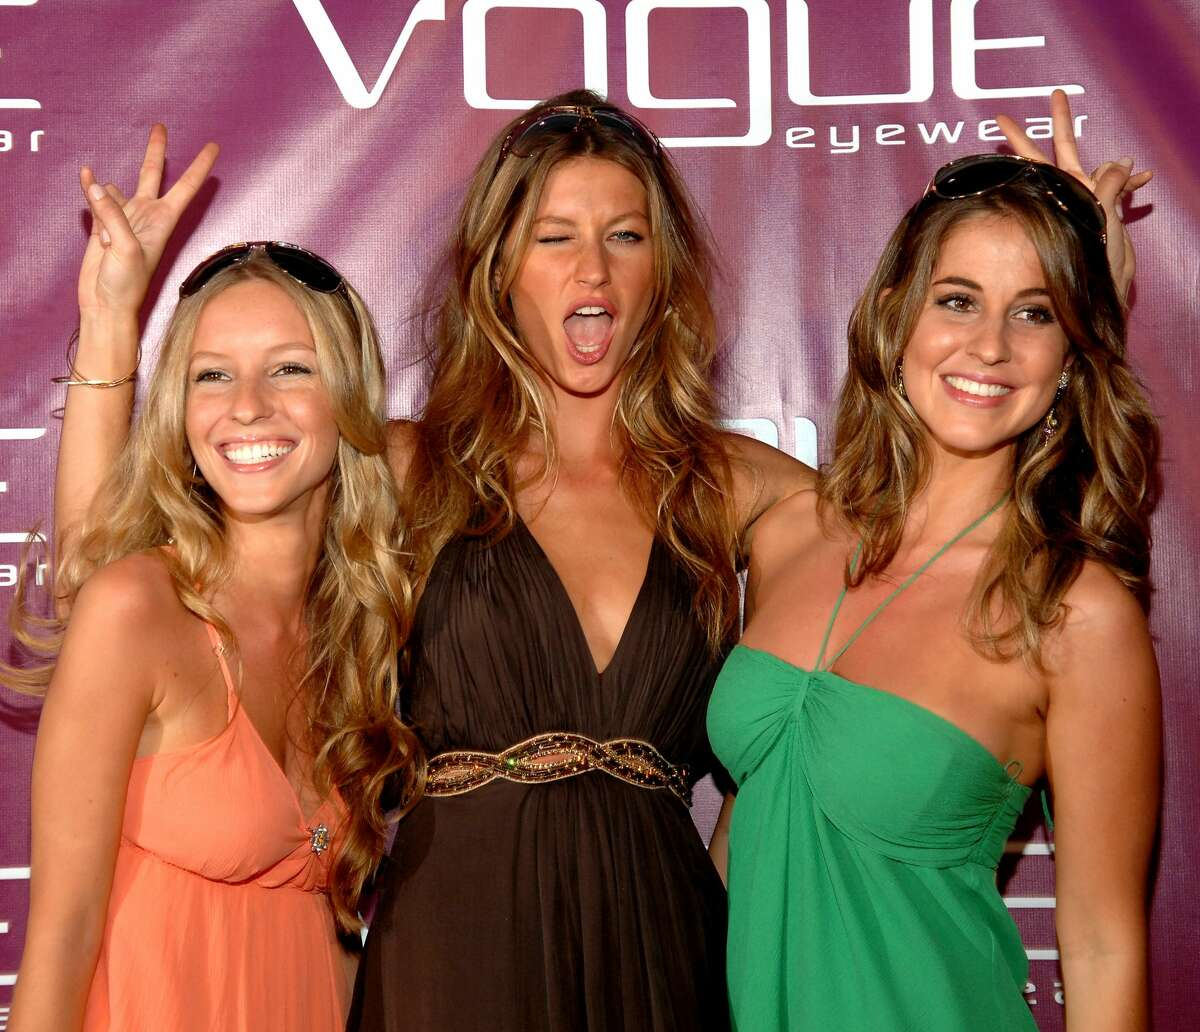 MIAMI, FL - MARCH 29 : Model Gisele Bundchen with her sisters at the Vogue Fantasy Chic Shack Beach Party at Tottem Gardens on March 29, 2007 in Miami , Florida. (Photo by Gustavo Caballero/Getty Images)